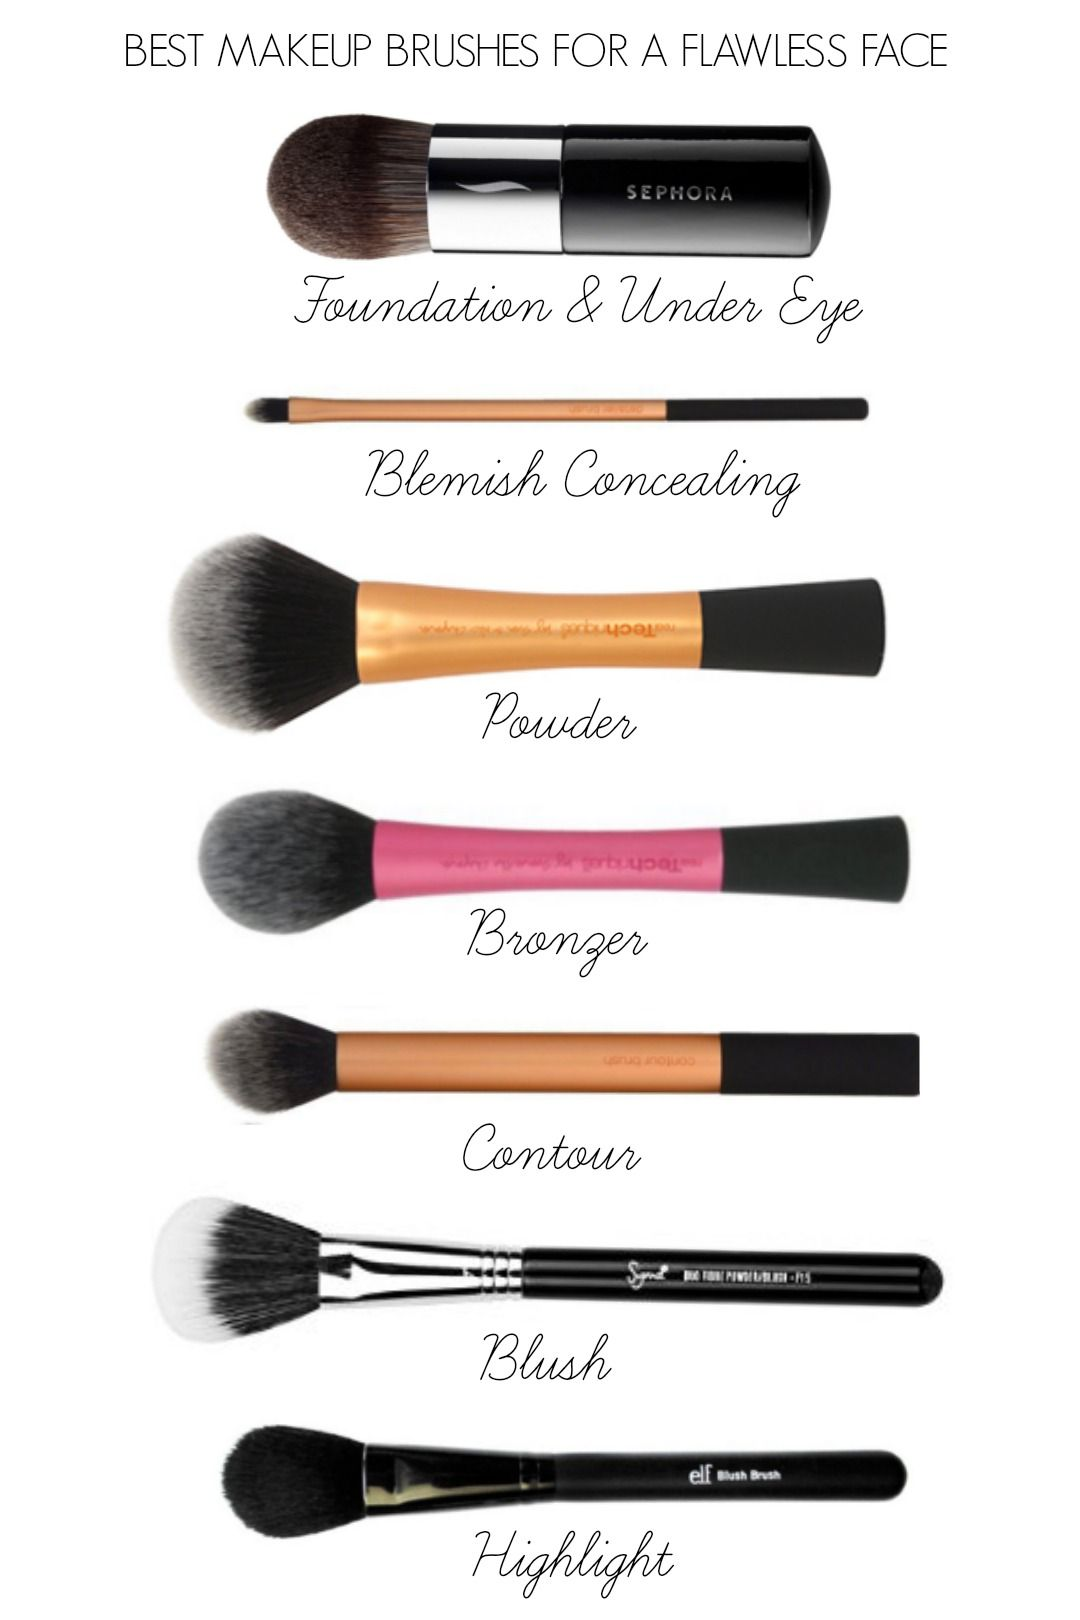 b4988a41cb BEST Makeup Brushes for a Flawless Face!